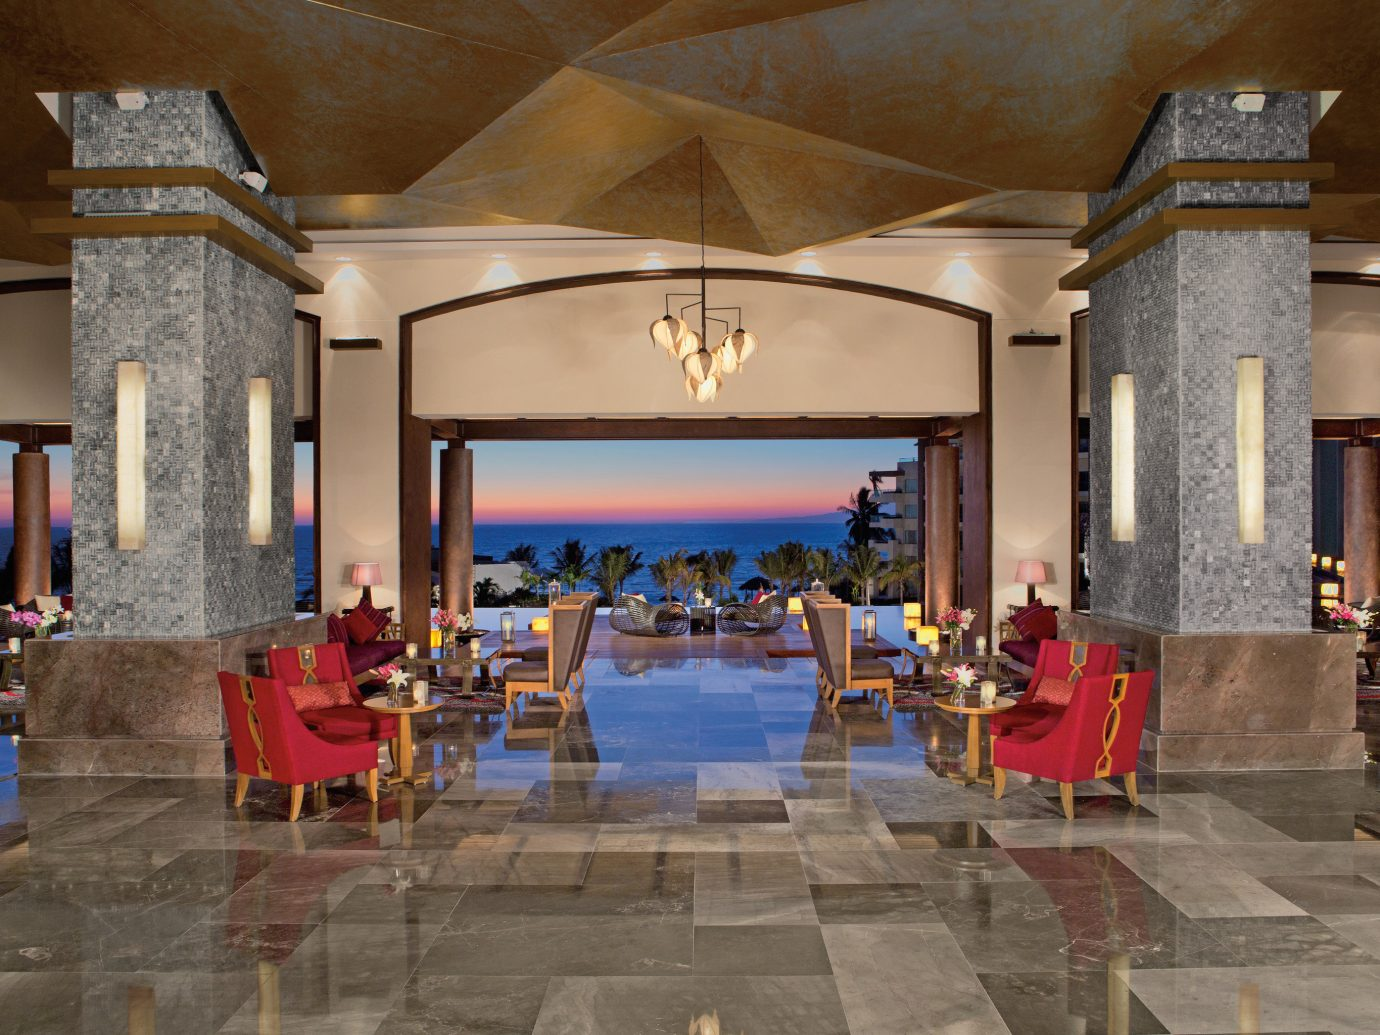 Hotels indoor Lobby ceiling interior design Resort restaurant leisure estate area